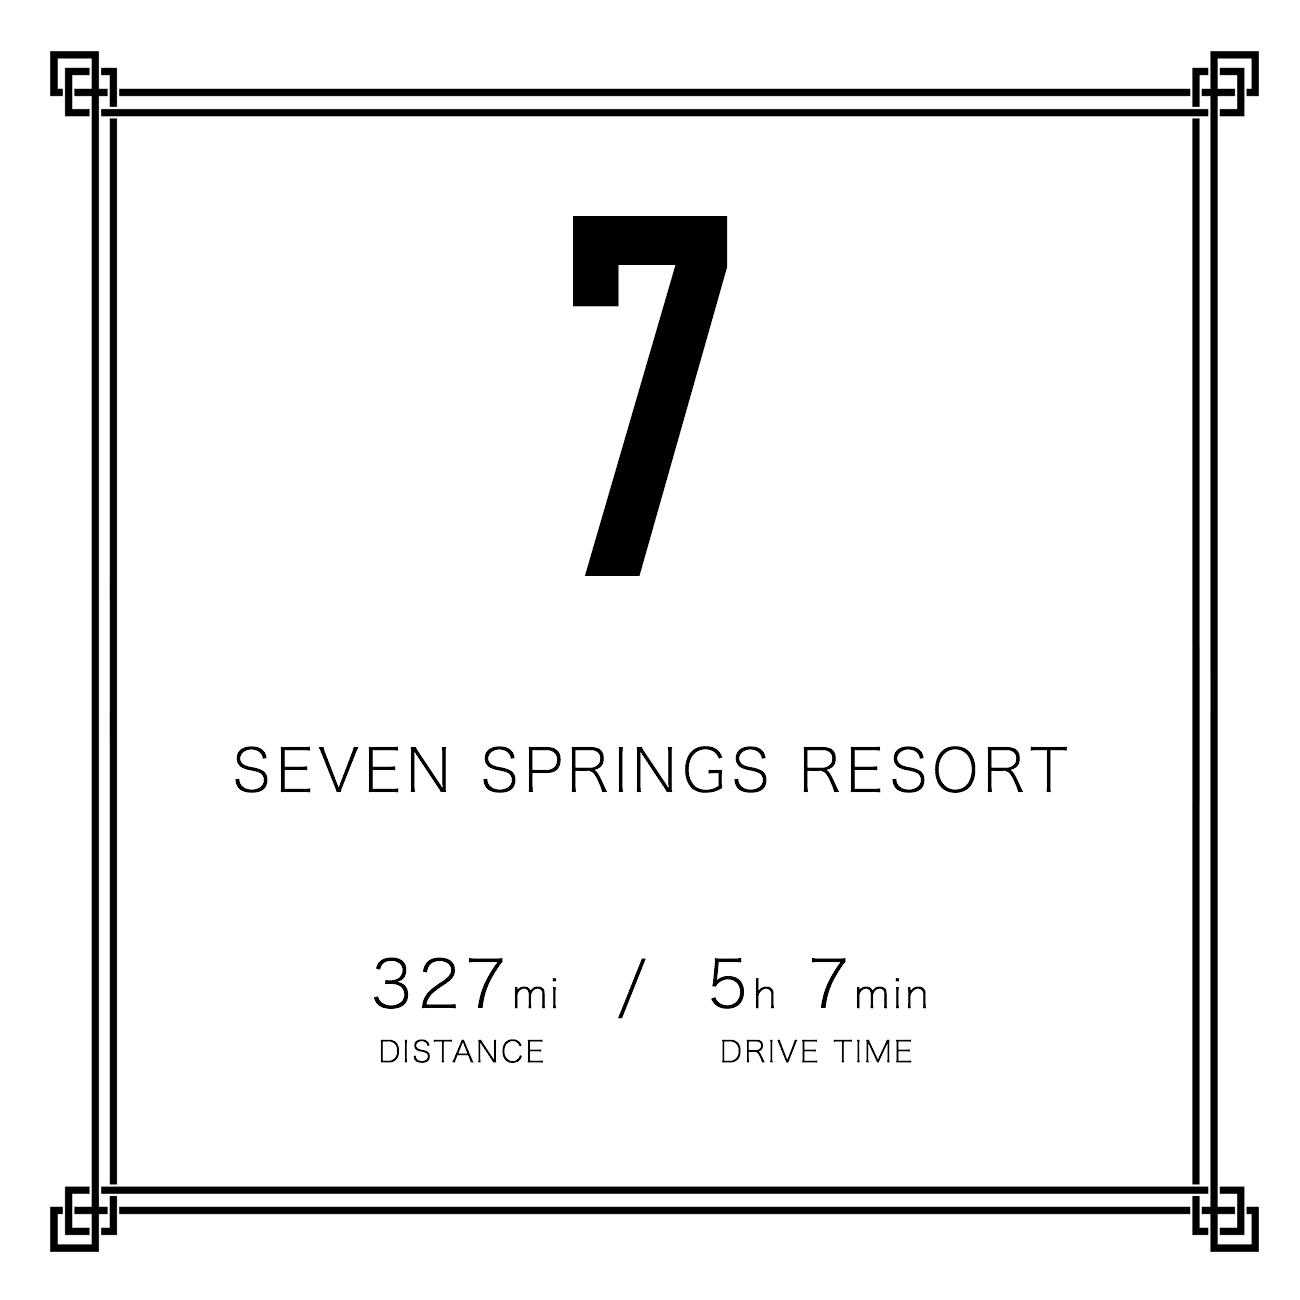 7. Seven Springs Resort / DISTANCE: 327 miles / DRIVE TIME: 5 hour 7 minutes / PUBLISHED: 12.4.16